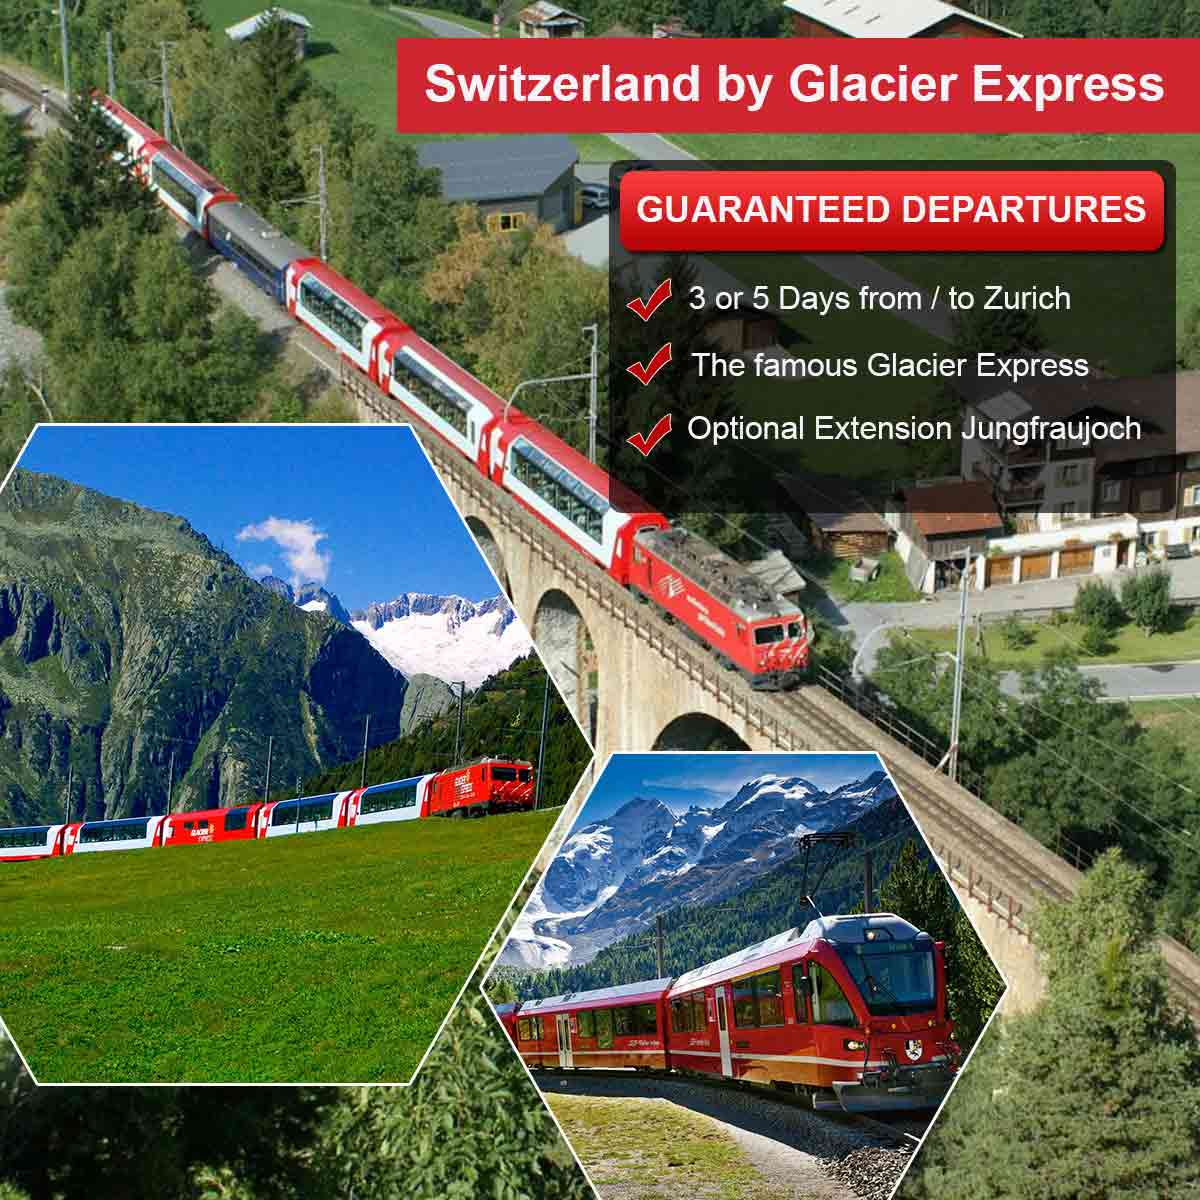 Switzerland by Glacier Express